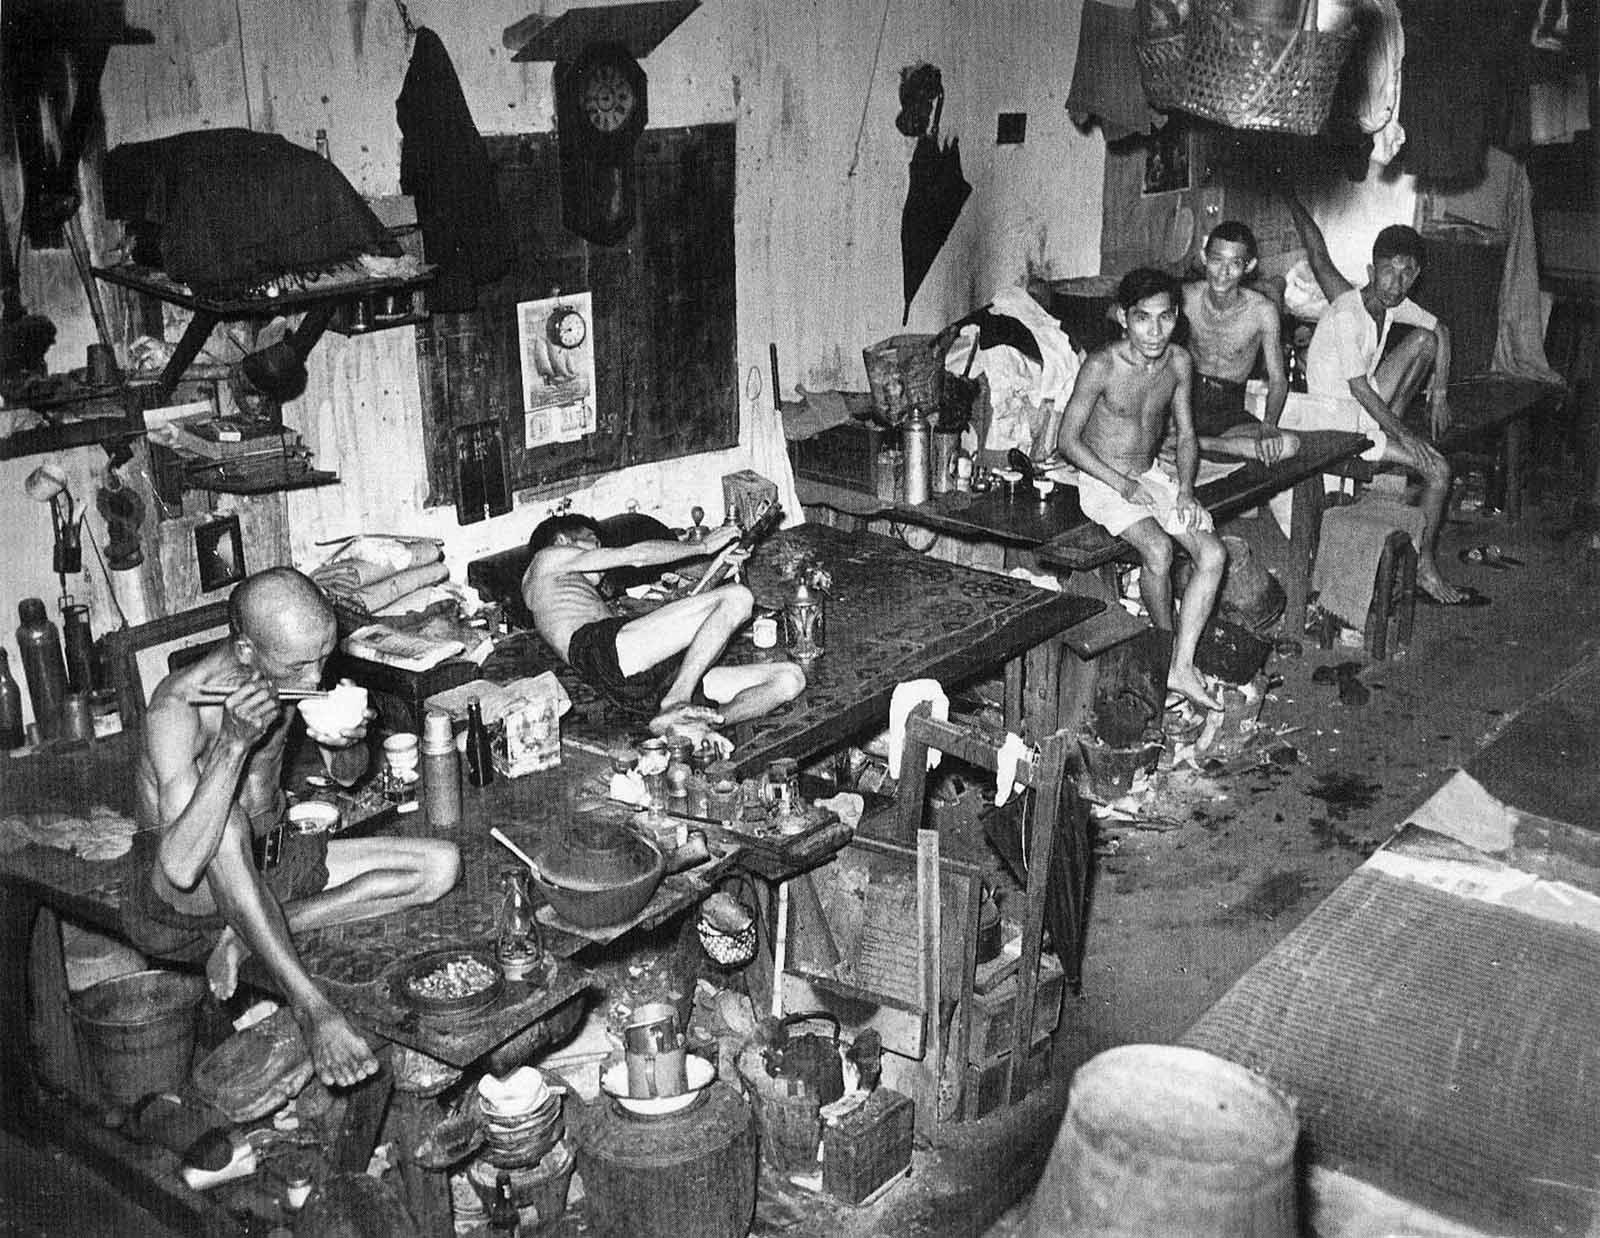 Pictures of an Opium Den in Singapore in 1941 ~ vintage everyday